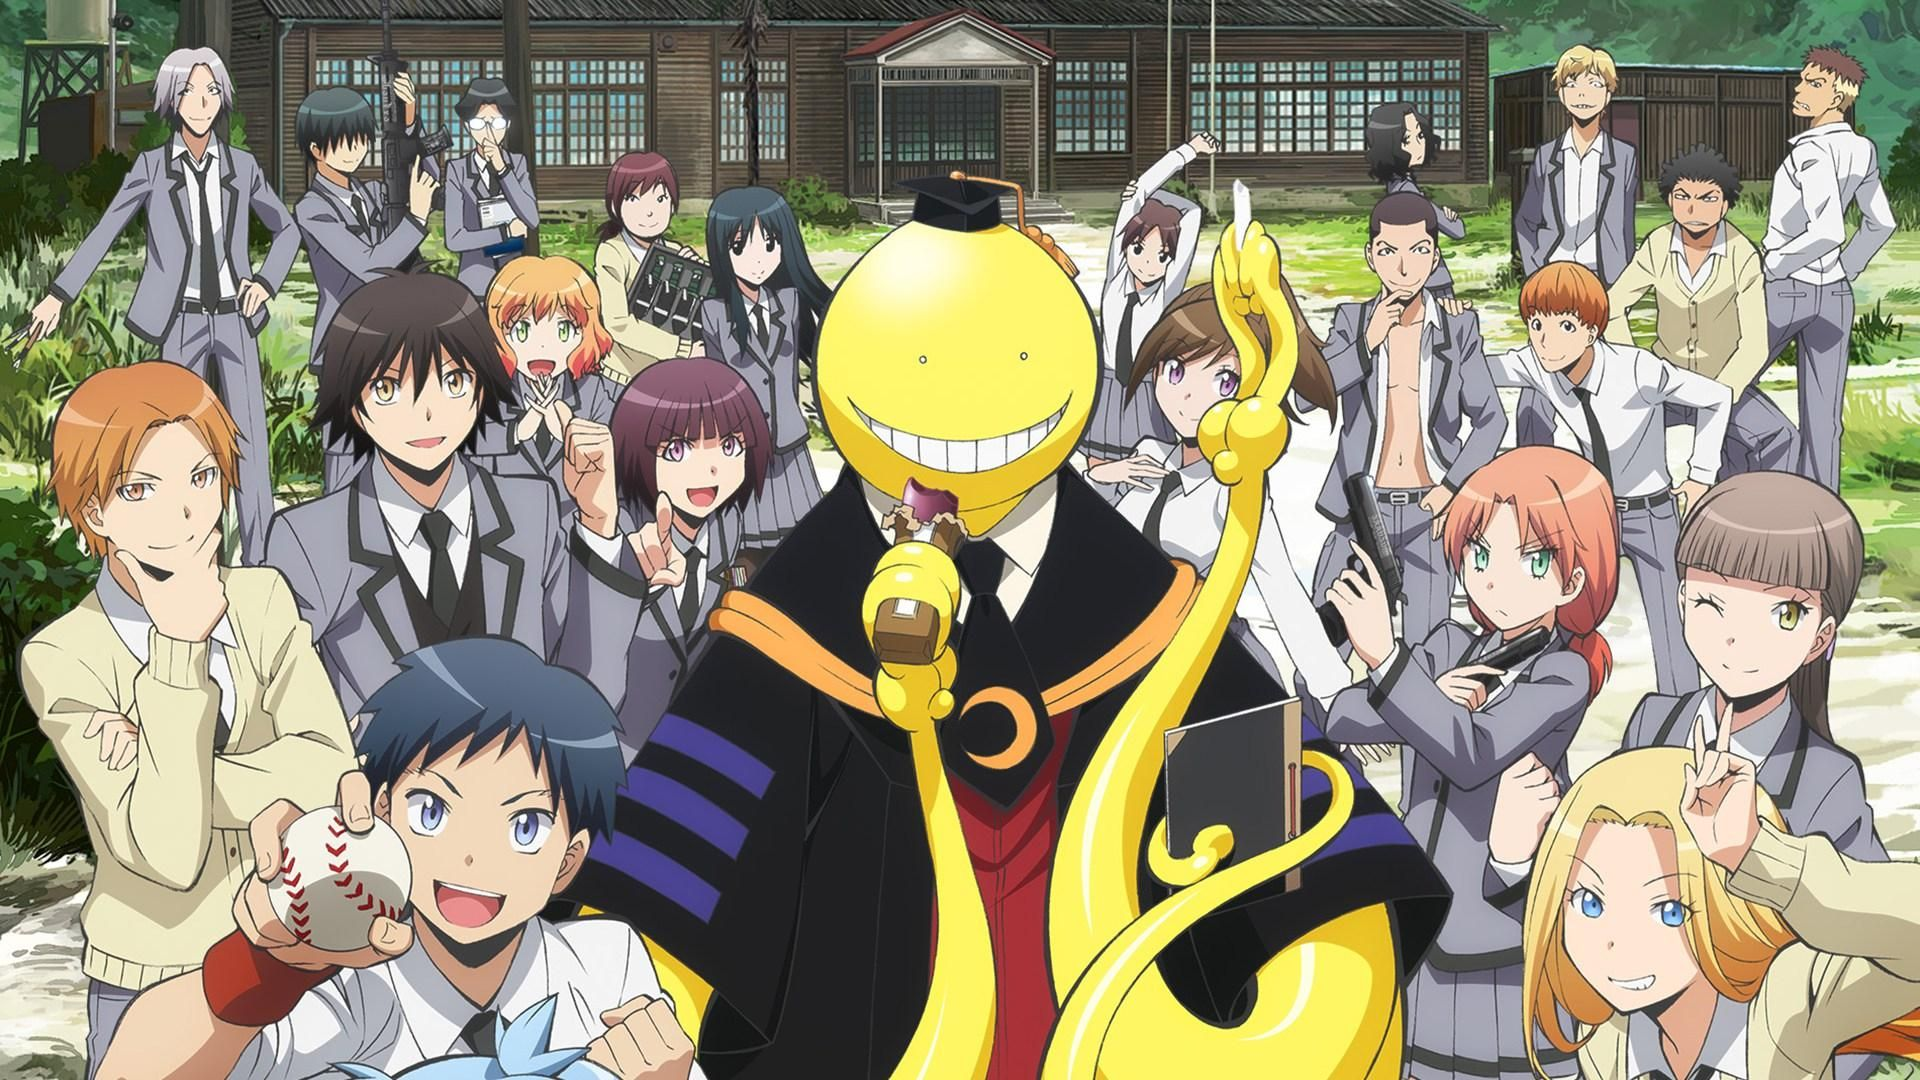 77 Assassination Classroom Aesthetic Background Trong 2020 Hinh ảnh